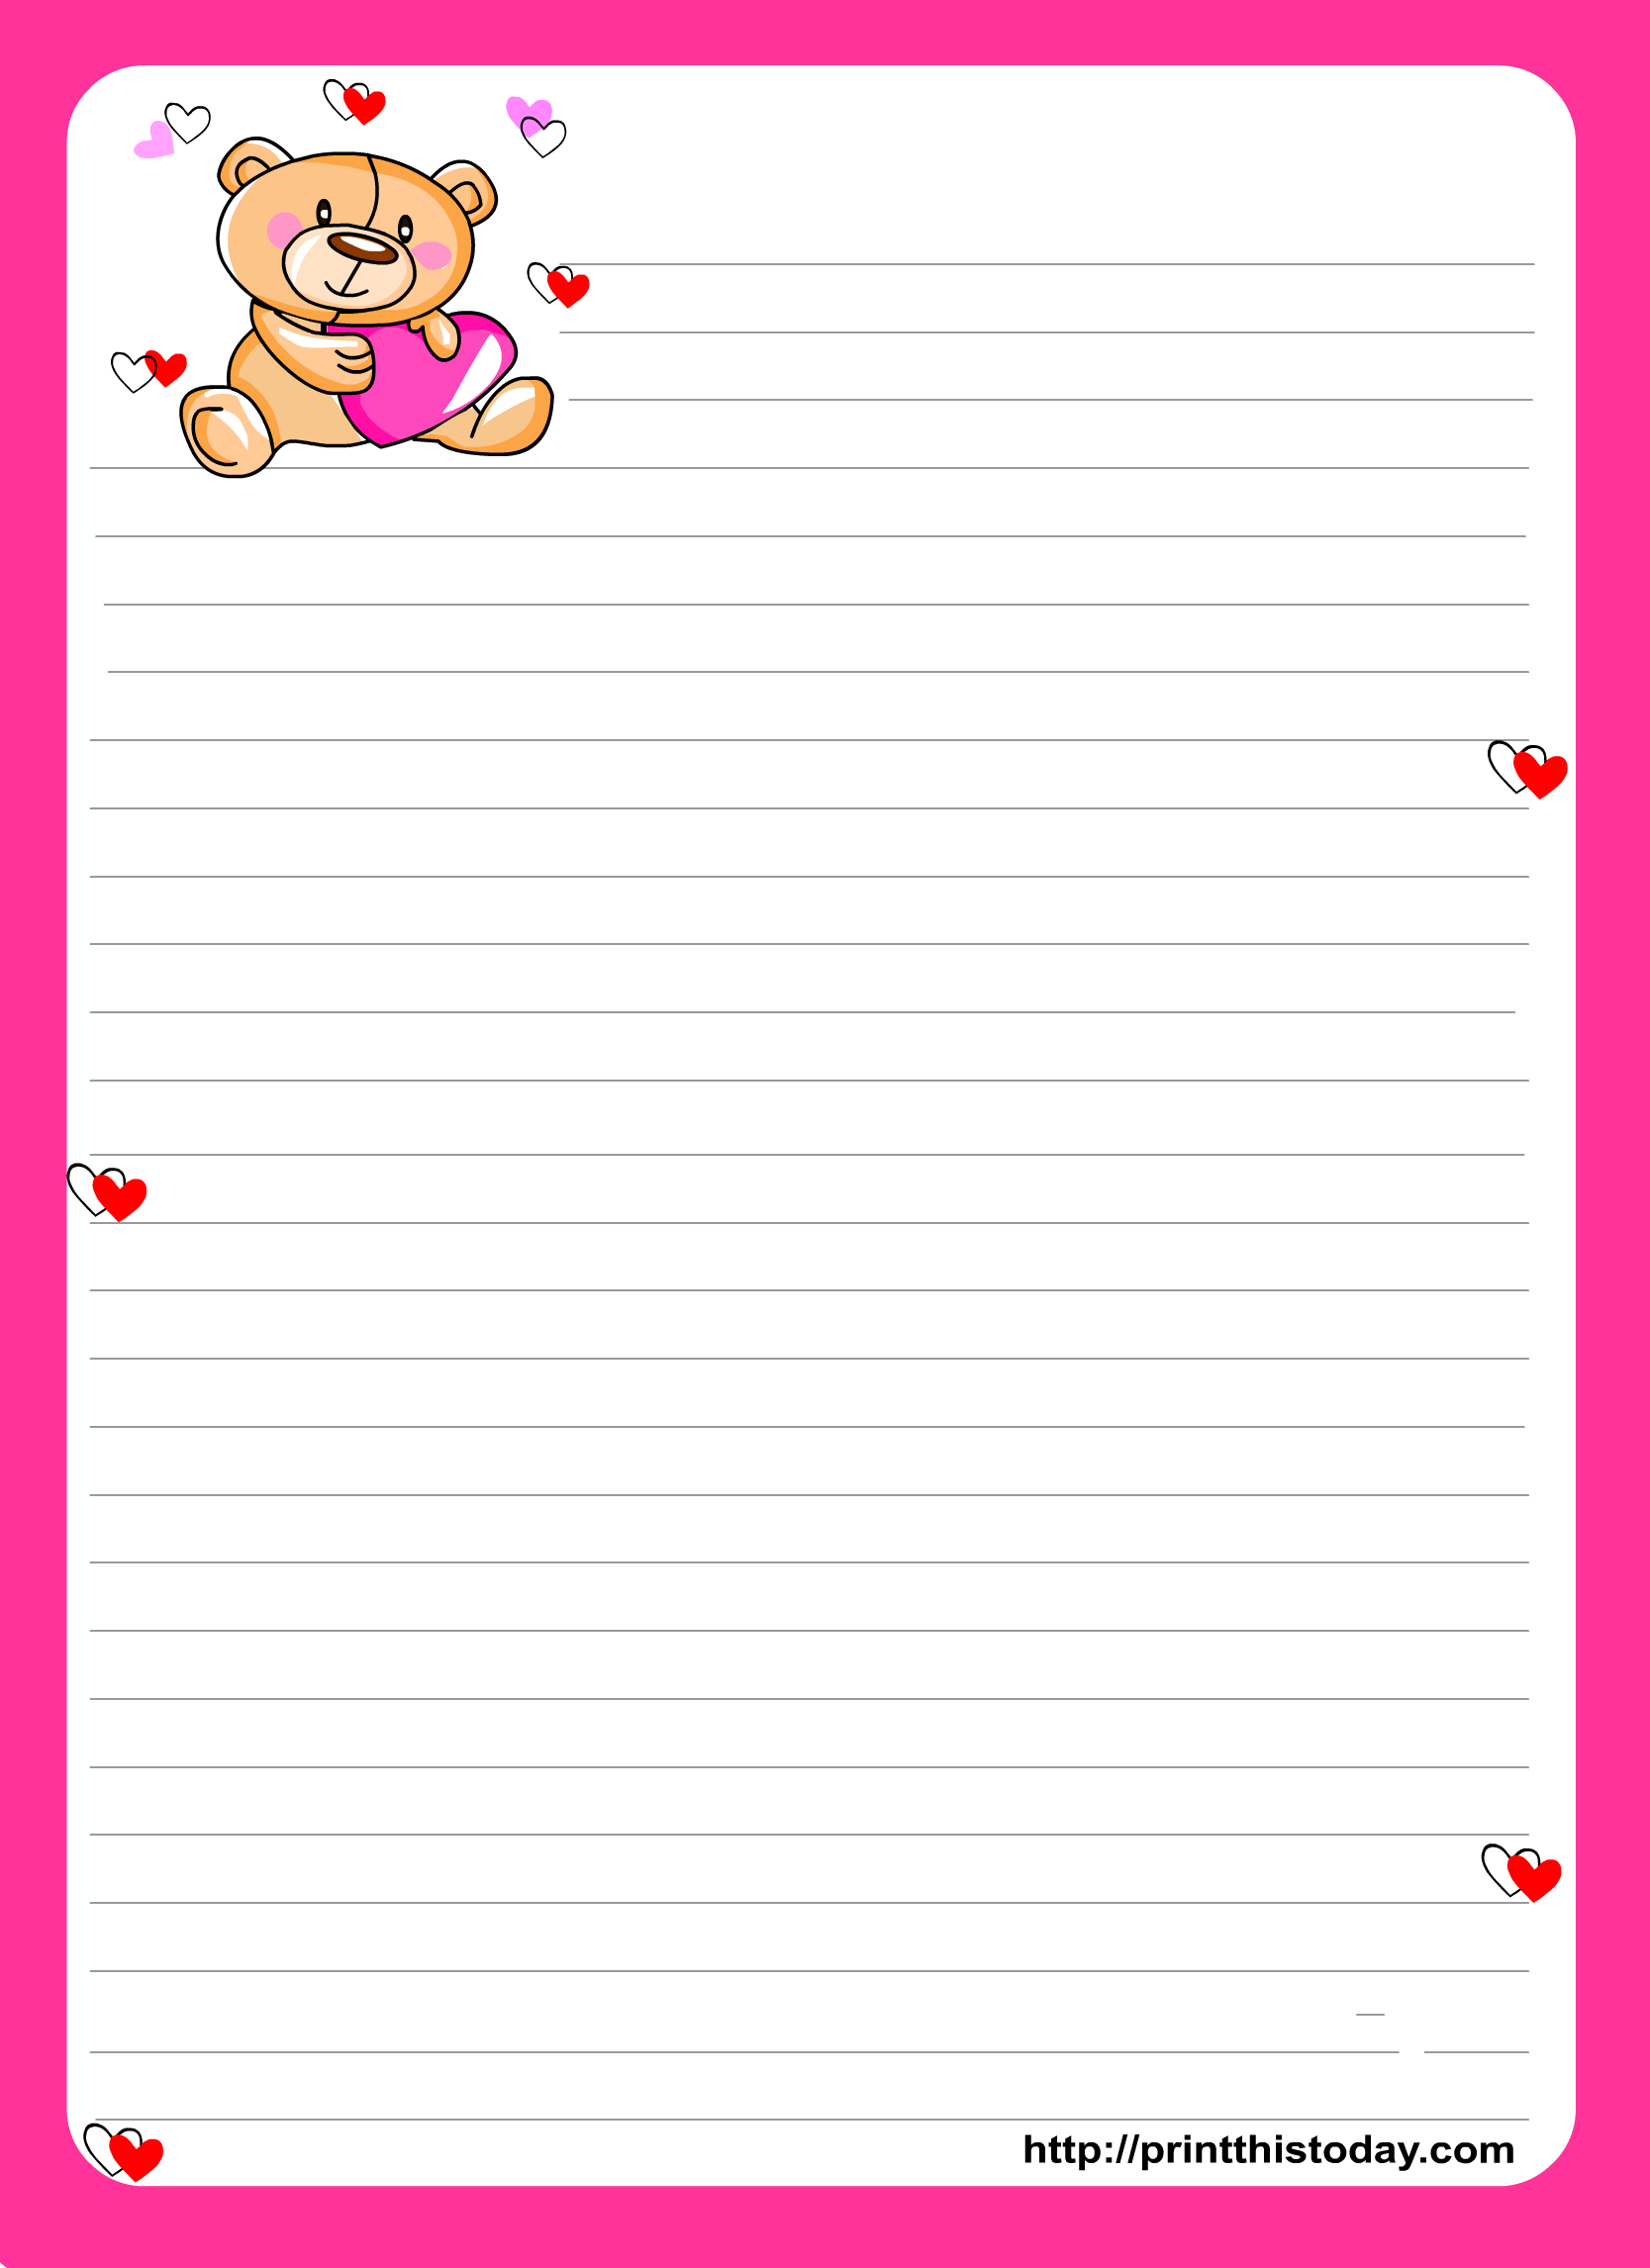 Printable Stationery Paper - Google Search | Stationery - Printables - Free Printable Stationery Paper